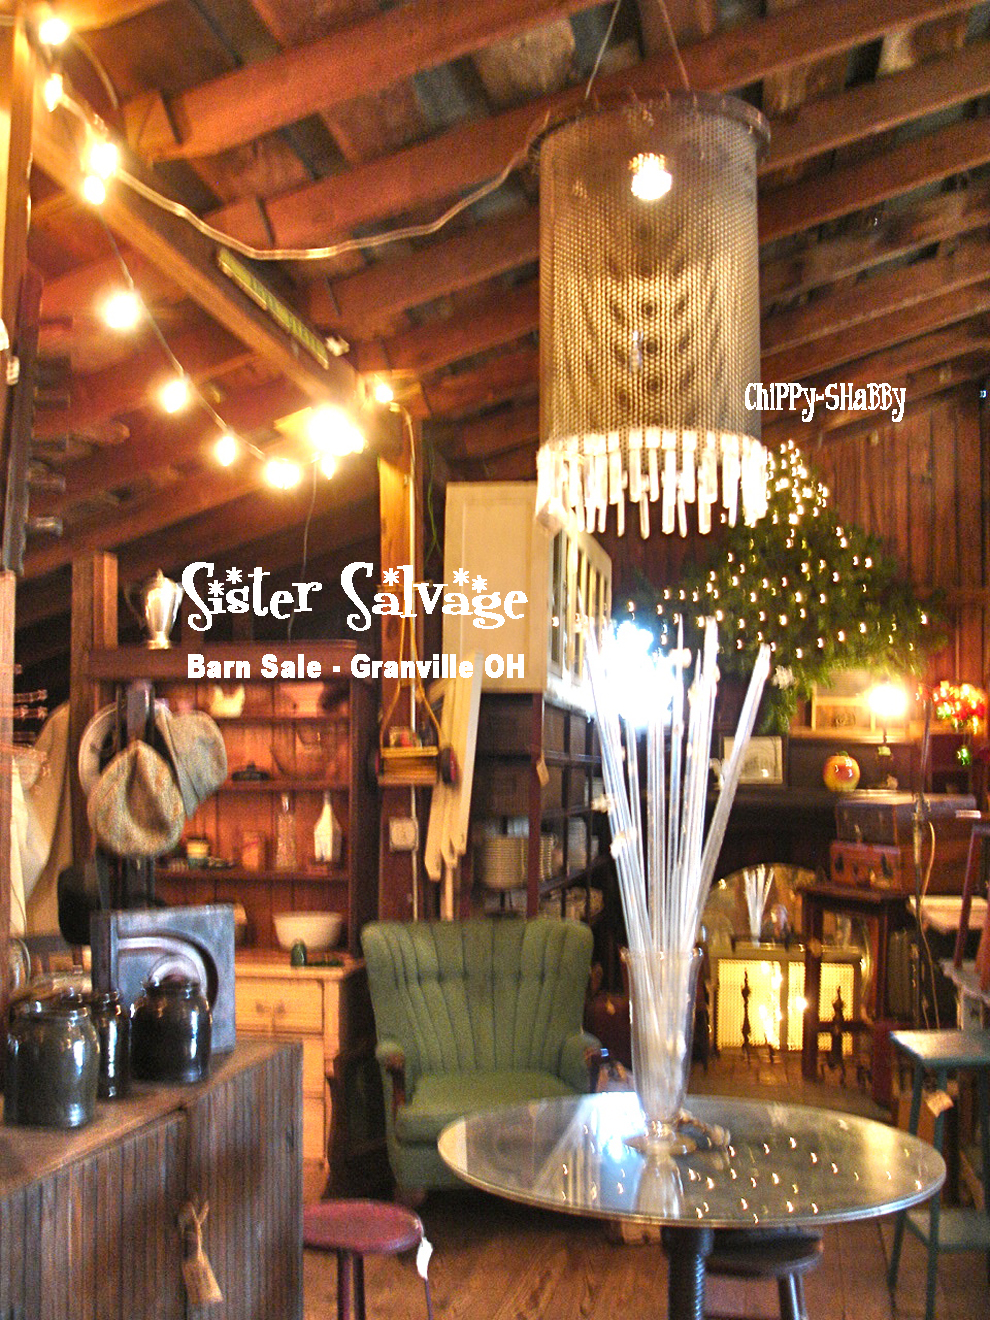 ChiPPy! - SHaBBy!: SISTER SaLVaGE ~ Best Barn SaLe in Granville, Ohio